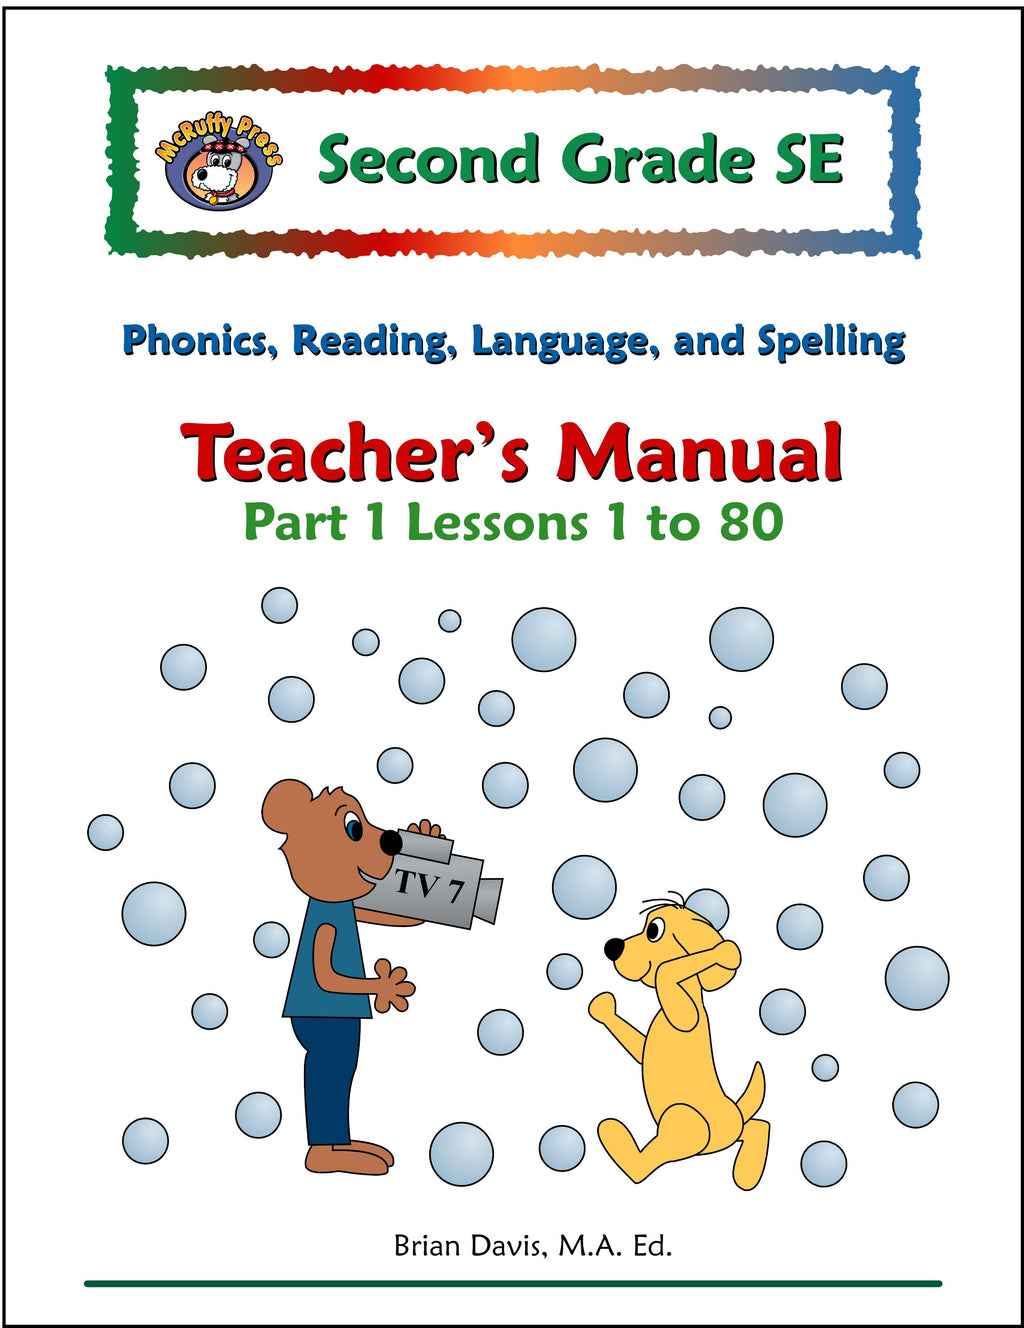 Second Grade SE Phonics and Reading Teacher's Manual Part 1 - McRuffy Press